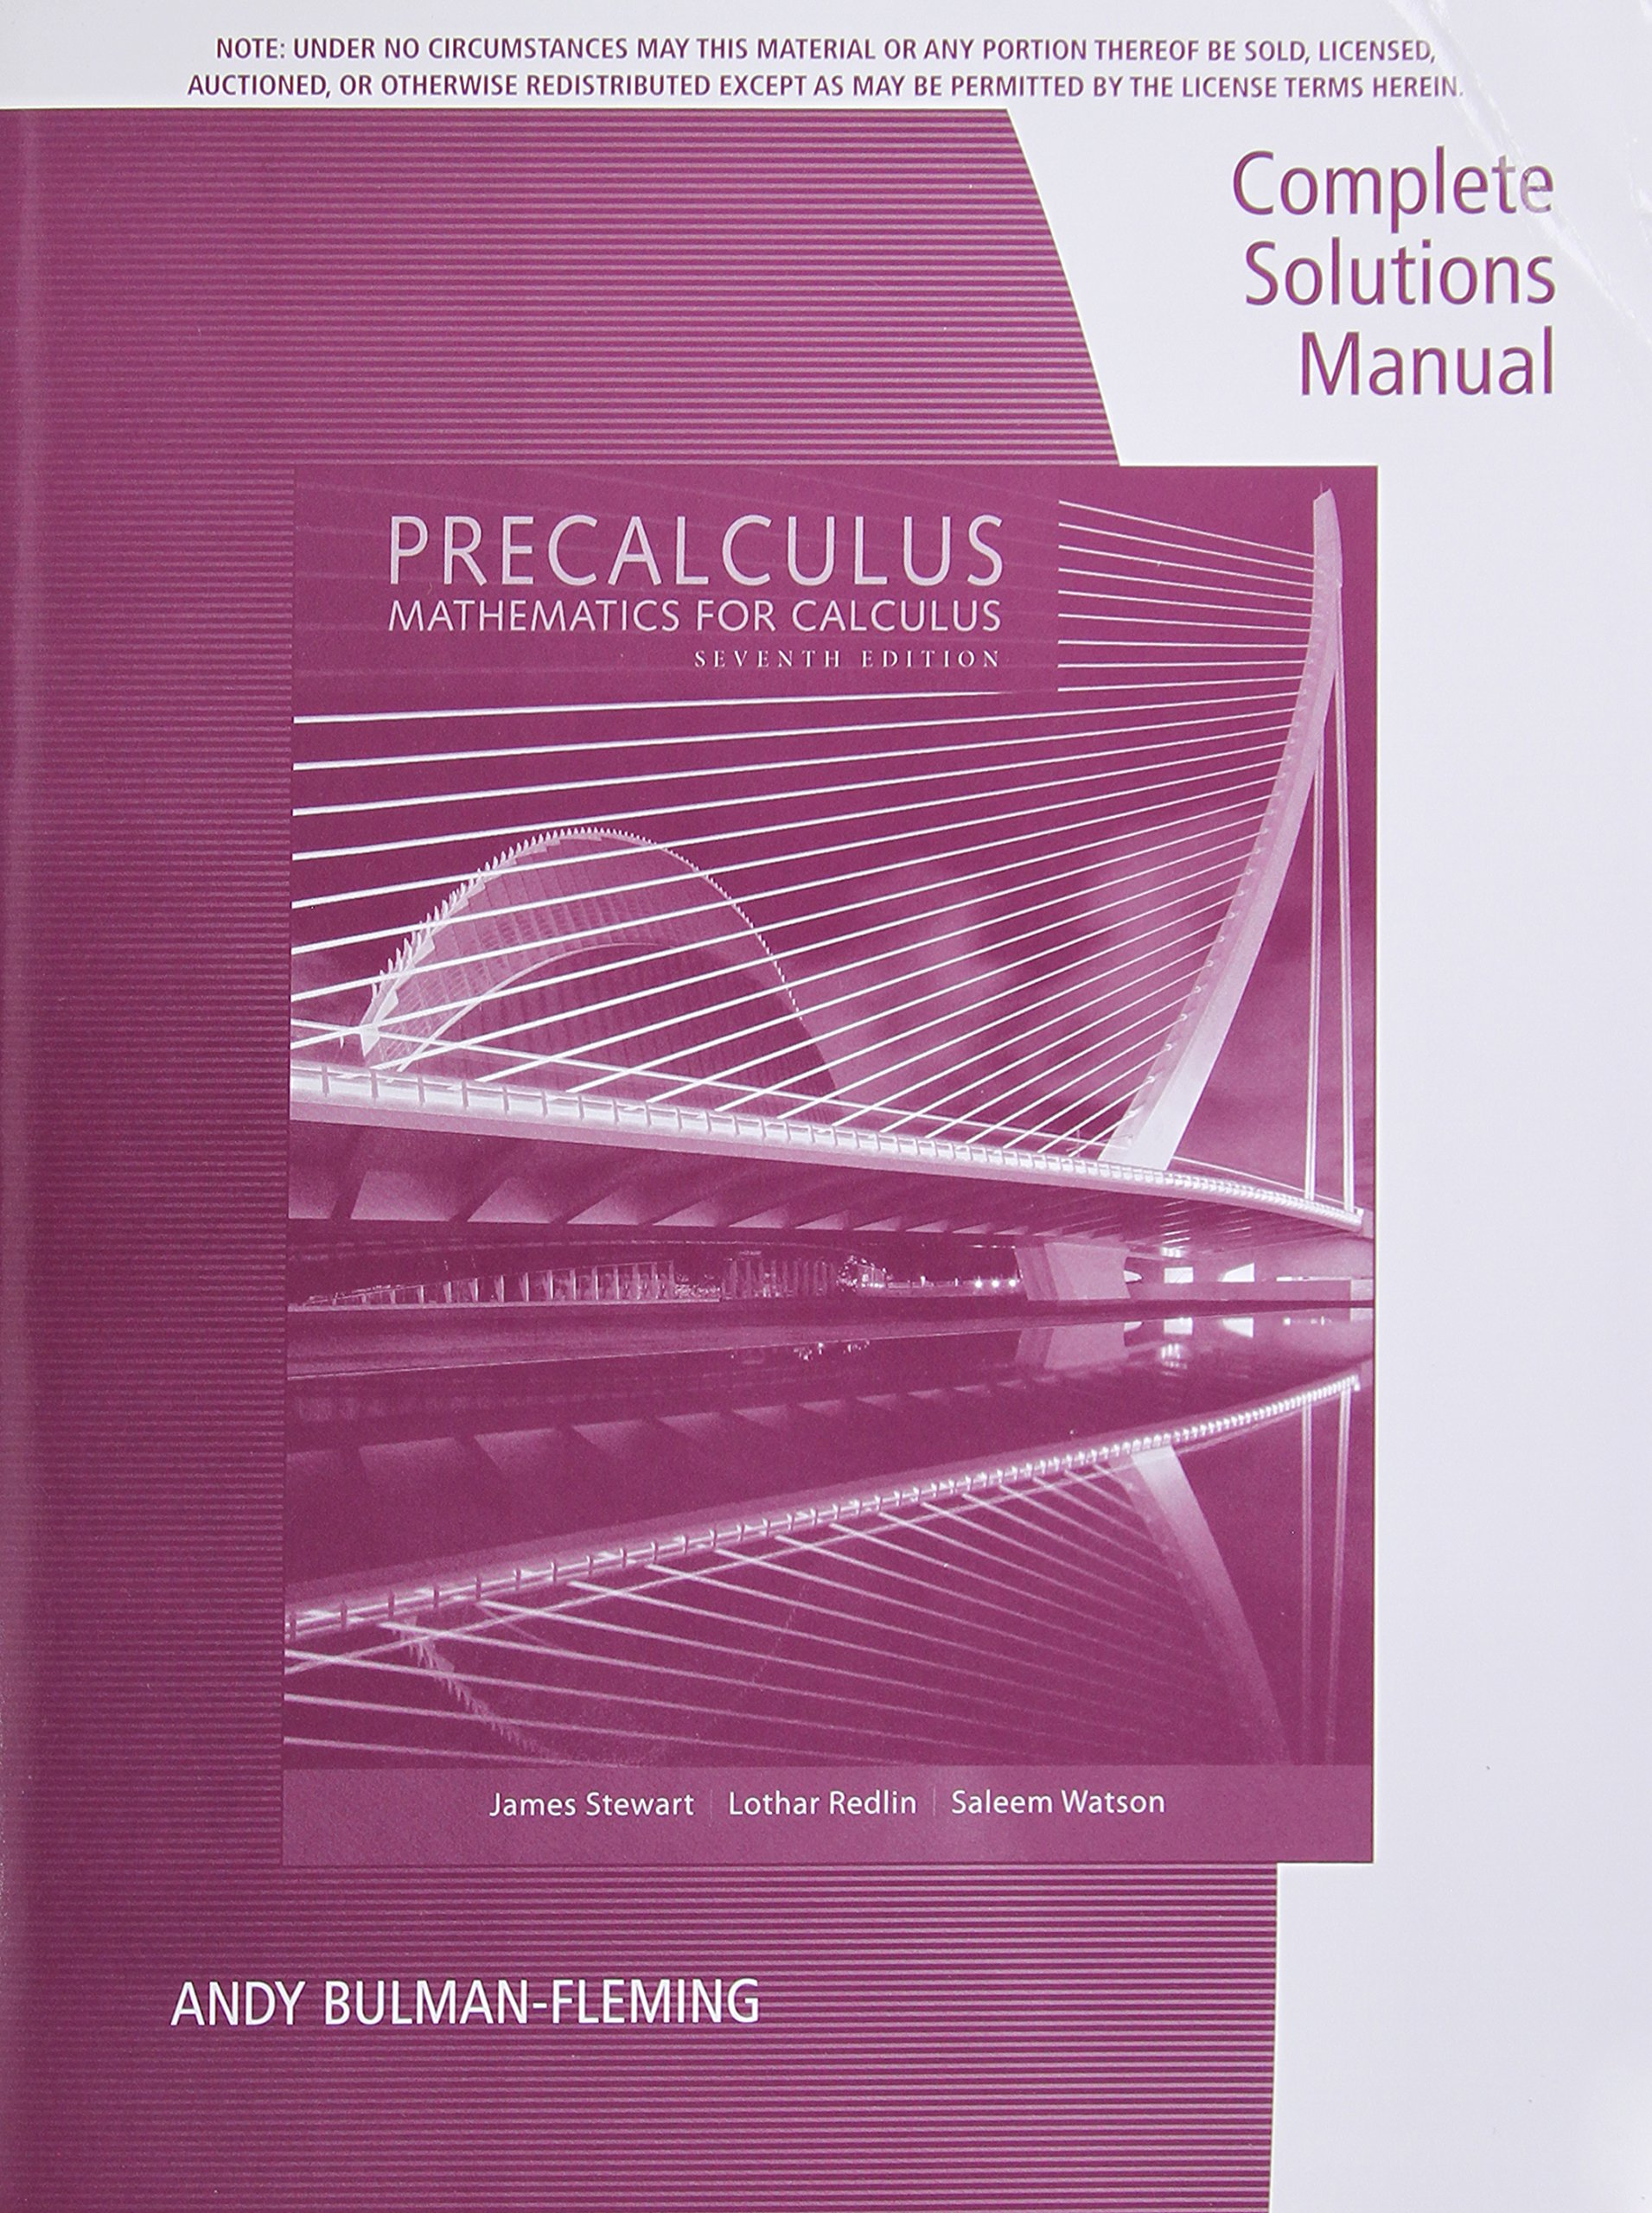 Complete Solutions Manual for Stewart/ Redlin/Watson 's Precalculus:  Mathematics for Calculus 7e: Andy Bulman-Fleming, James Stewart, Lothar  Redlin, ...